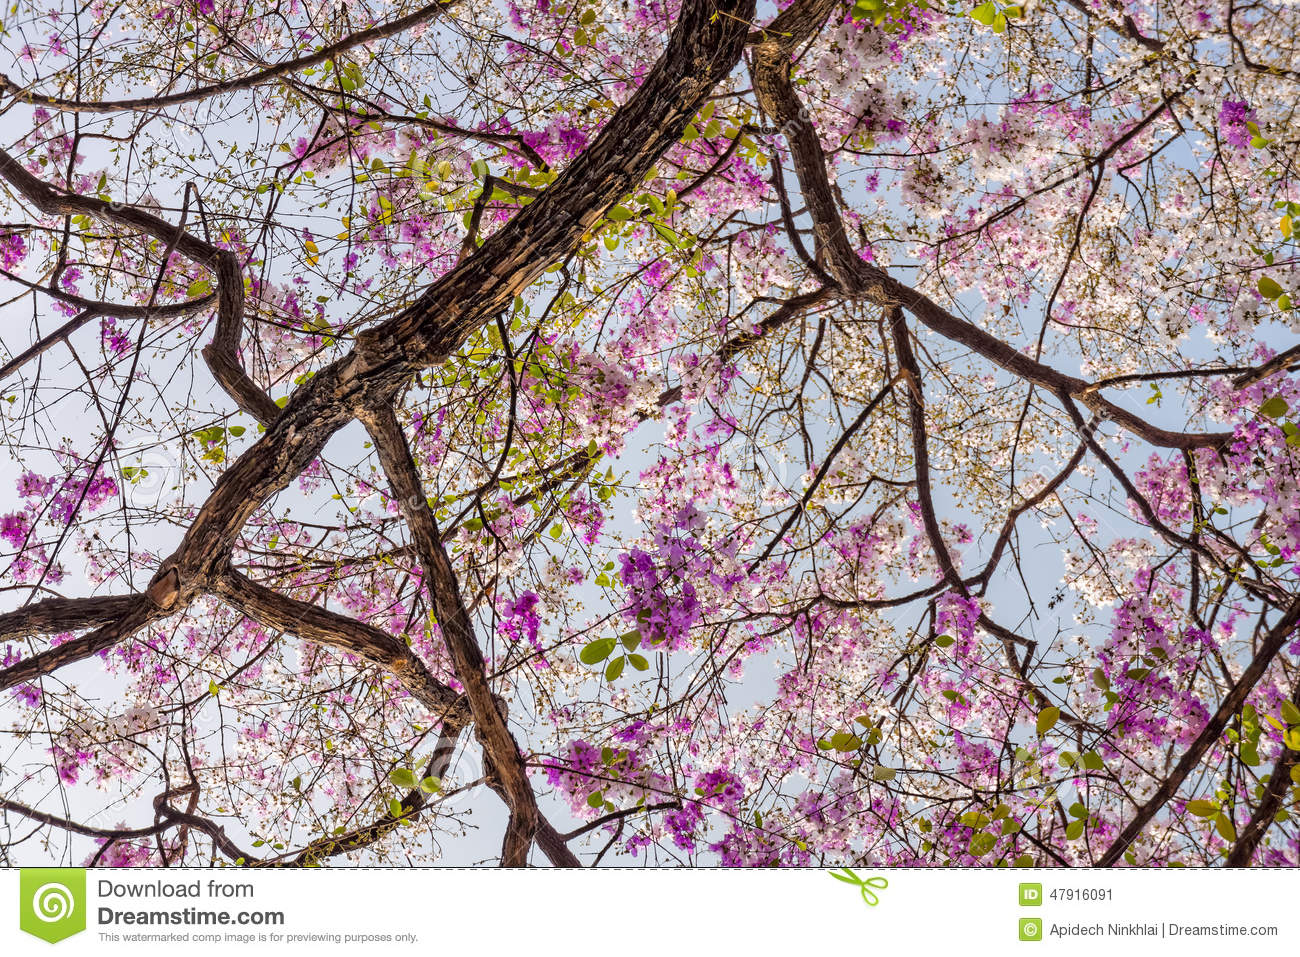 Lagerstroemia speciosa tree with pink flowers